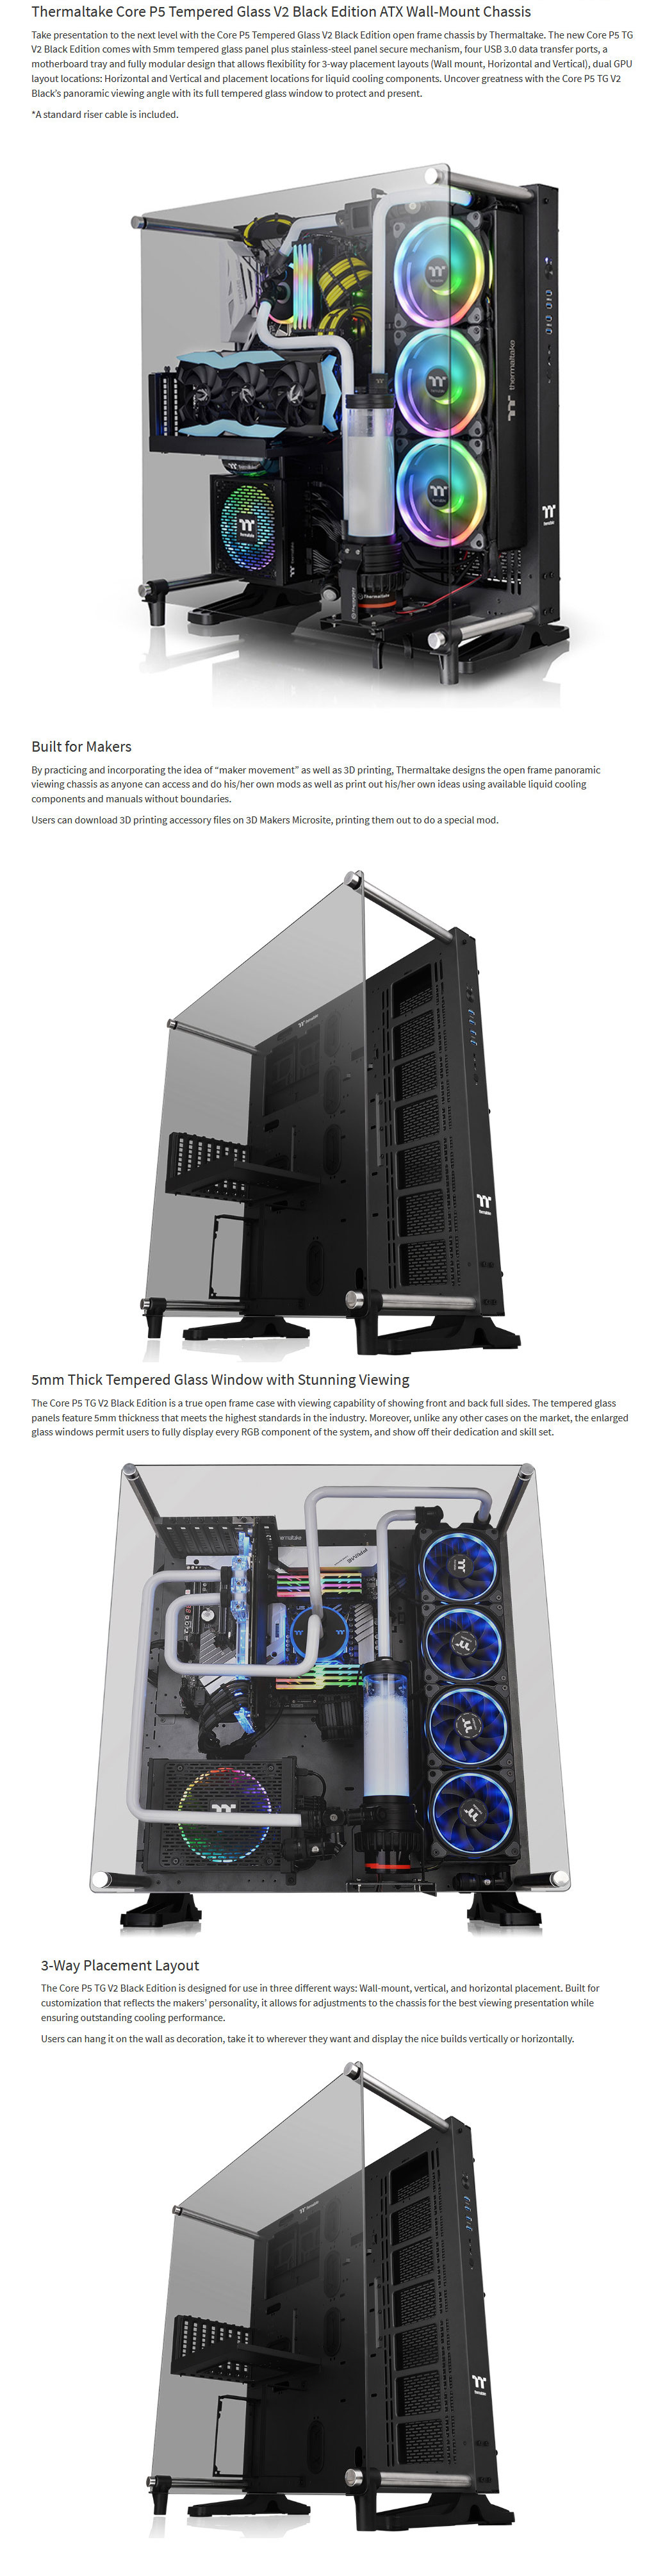 Thermaltake Core P5 Tempered Glass V2 Edition Wall-Mount Chassis